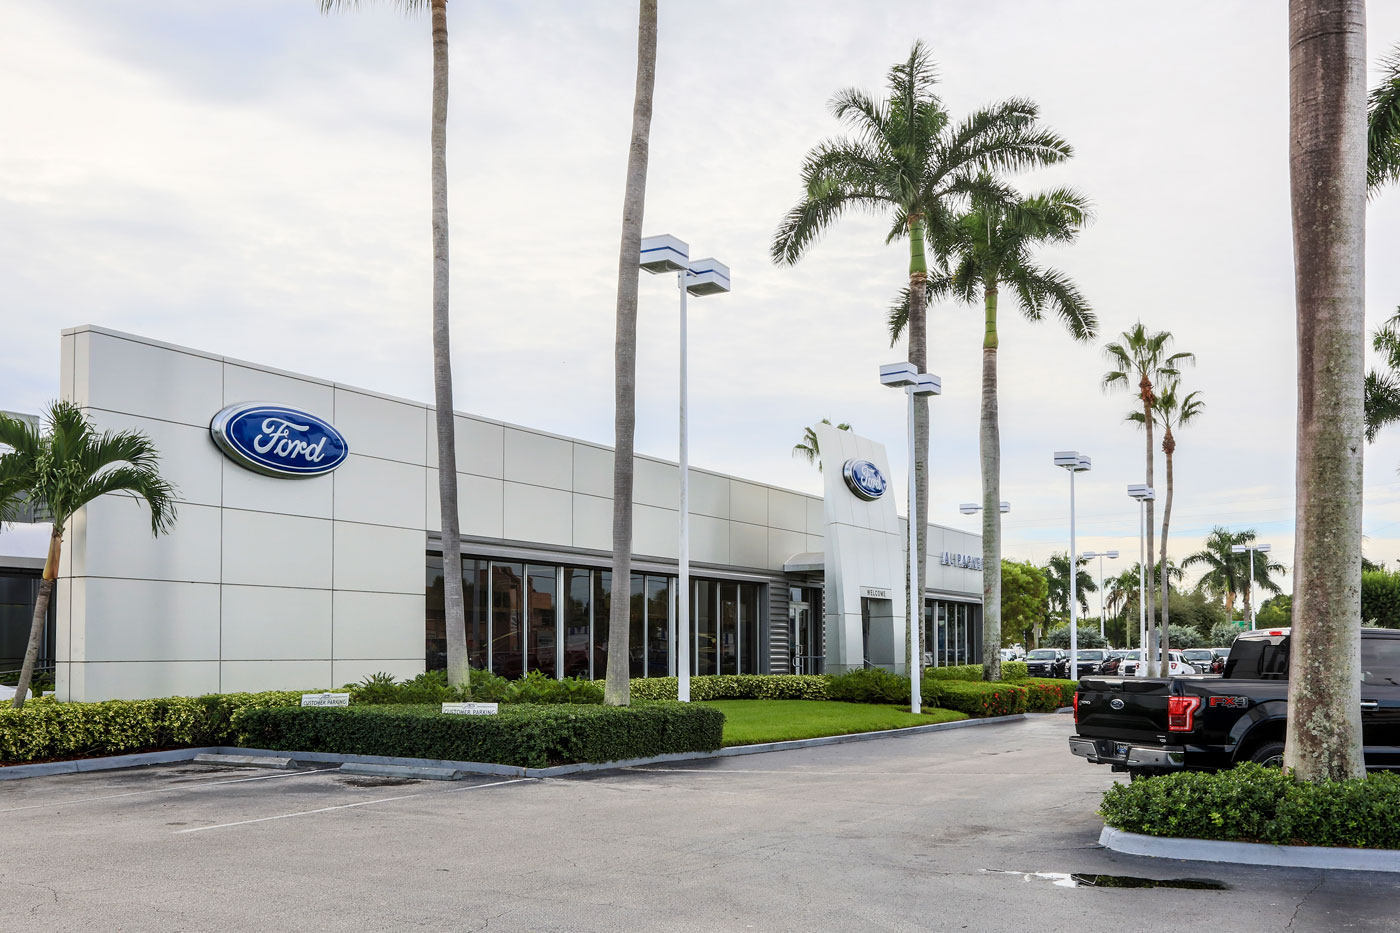 Al Packer Ford East, West Palm Beach, FL